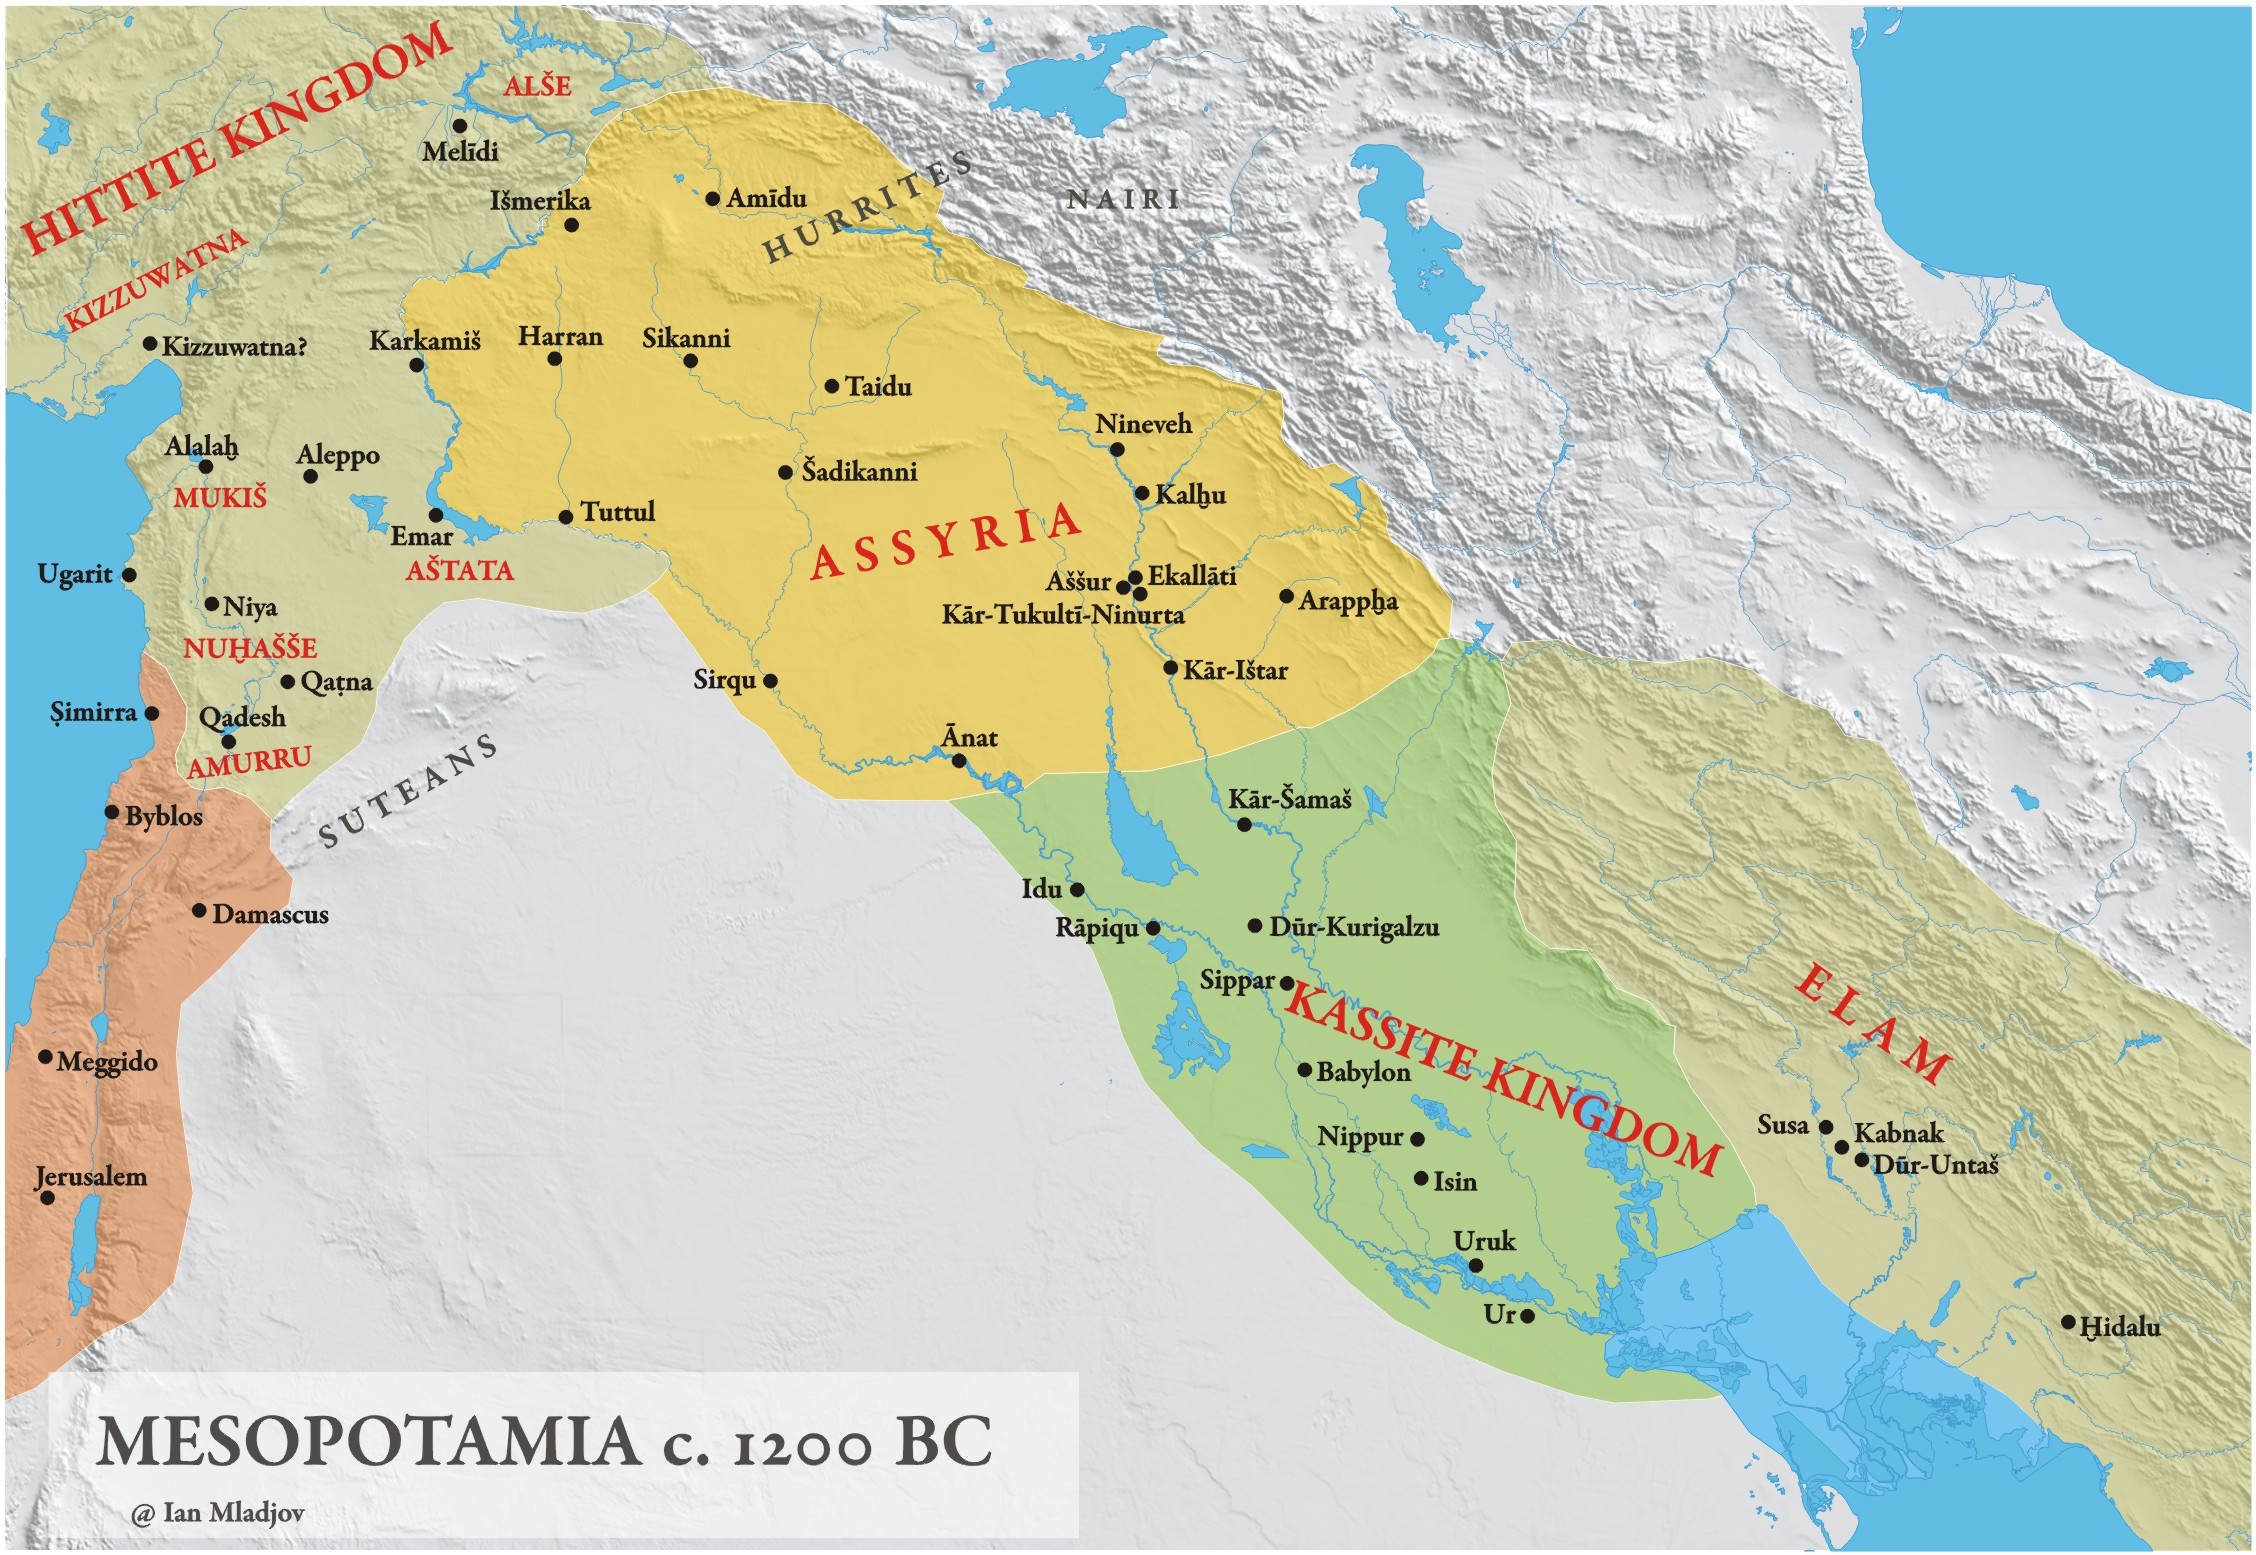 ancient mesopotamia Mesopotamia an overview of mesopotamia encyclopædia britannica, inc this article covers the history of mesopotamia from the prehistoric period up to the arab conquest in the 7th century cefor the history of the region in the succeeding periods, see iraq, history offor a discussion of the religions of ancient mesopotamia, see mesopotamian religion.